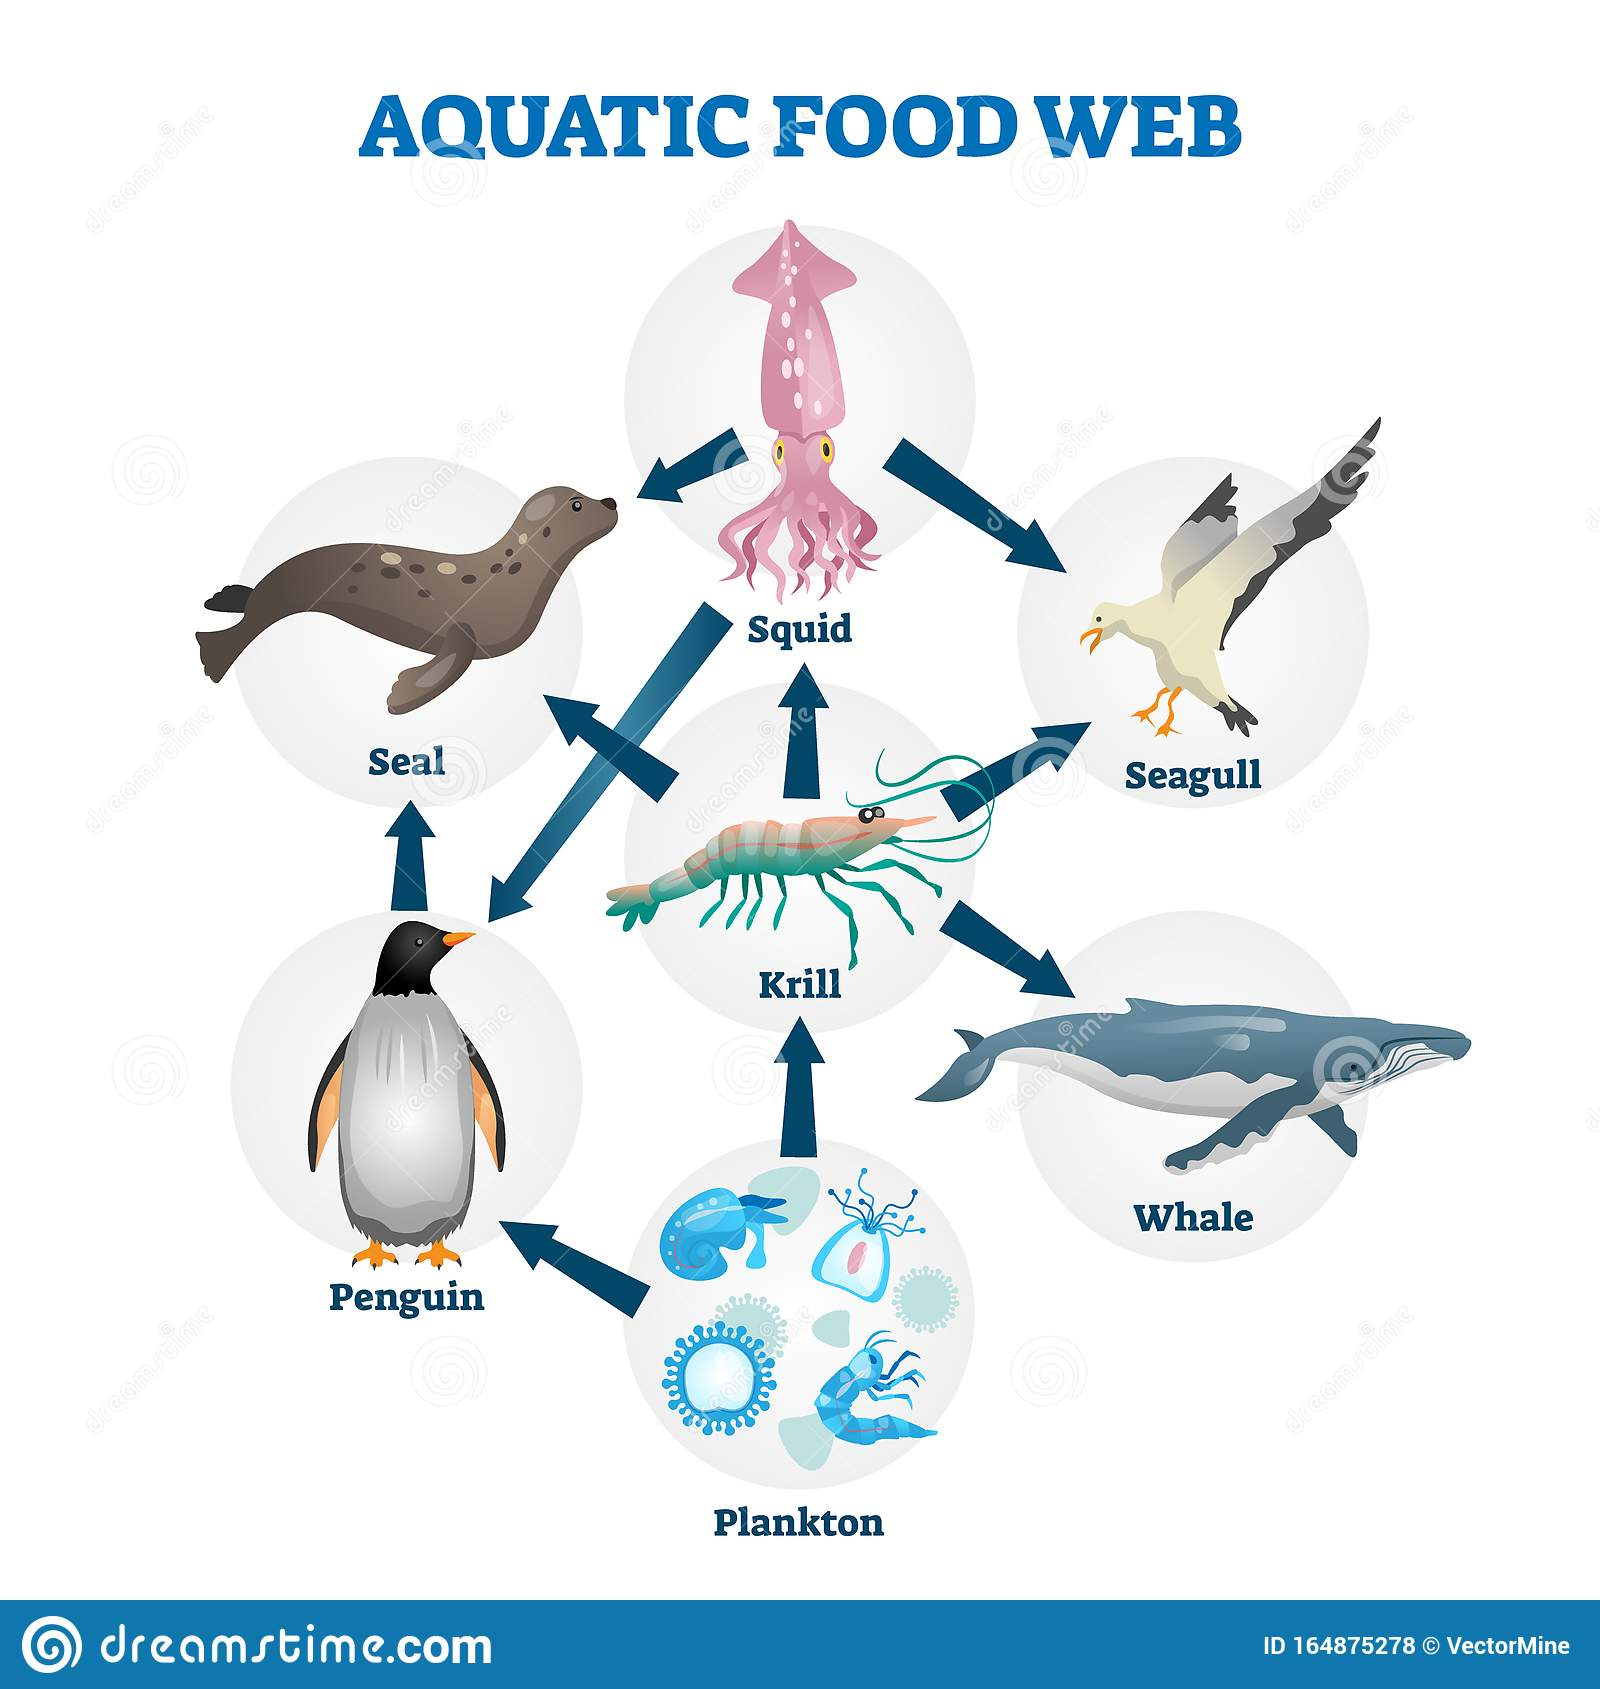 Aquatic Food Web Vector Illustration Labeled Educational